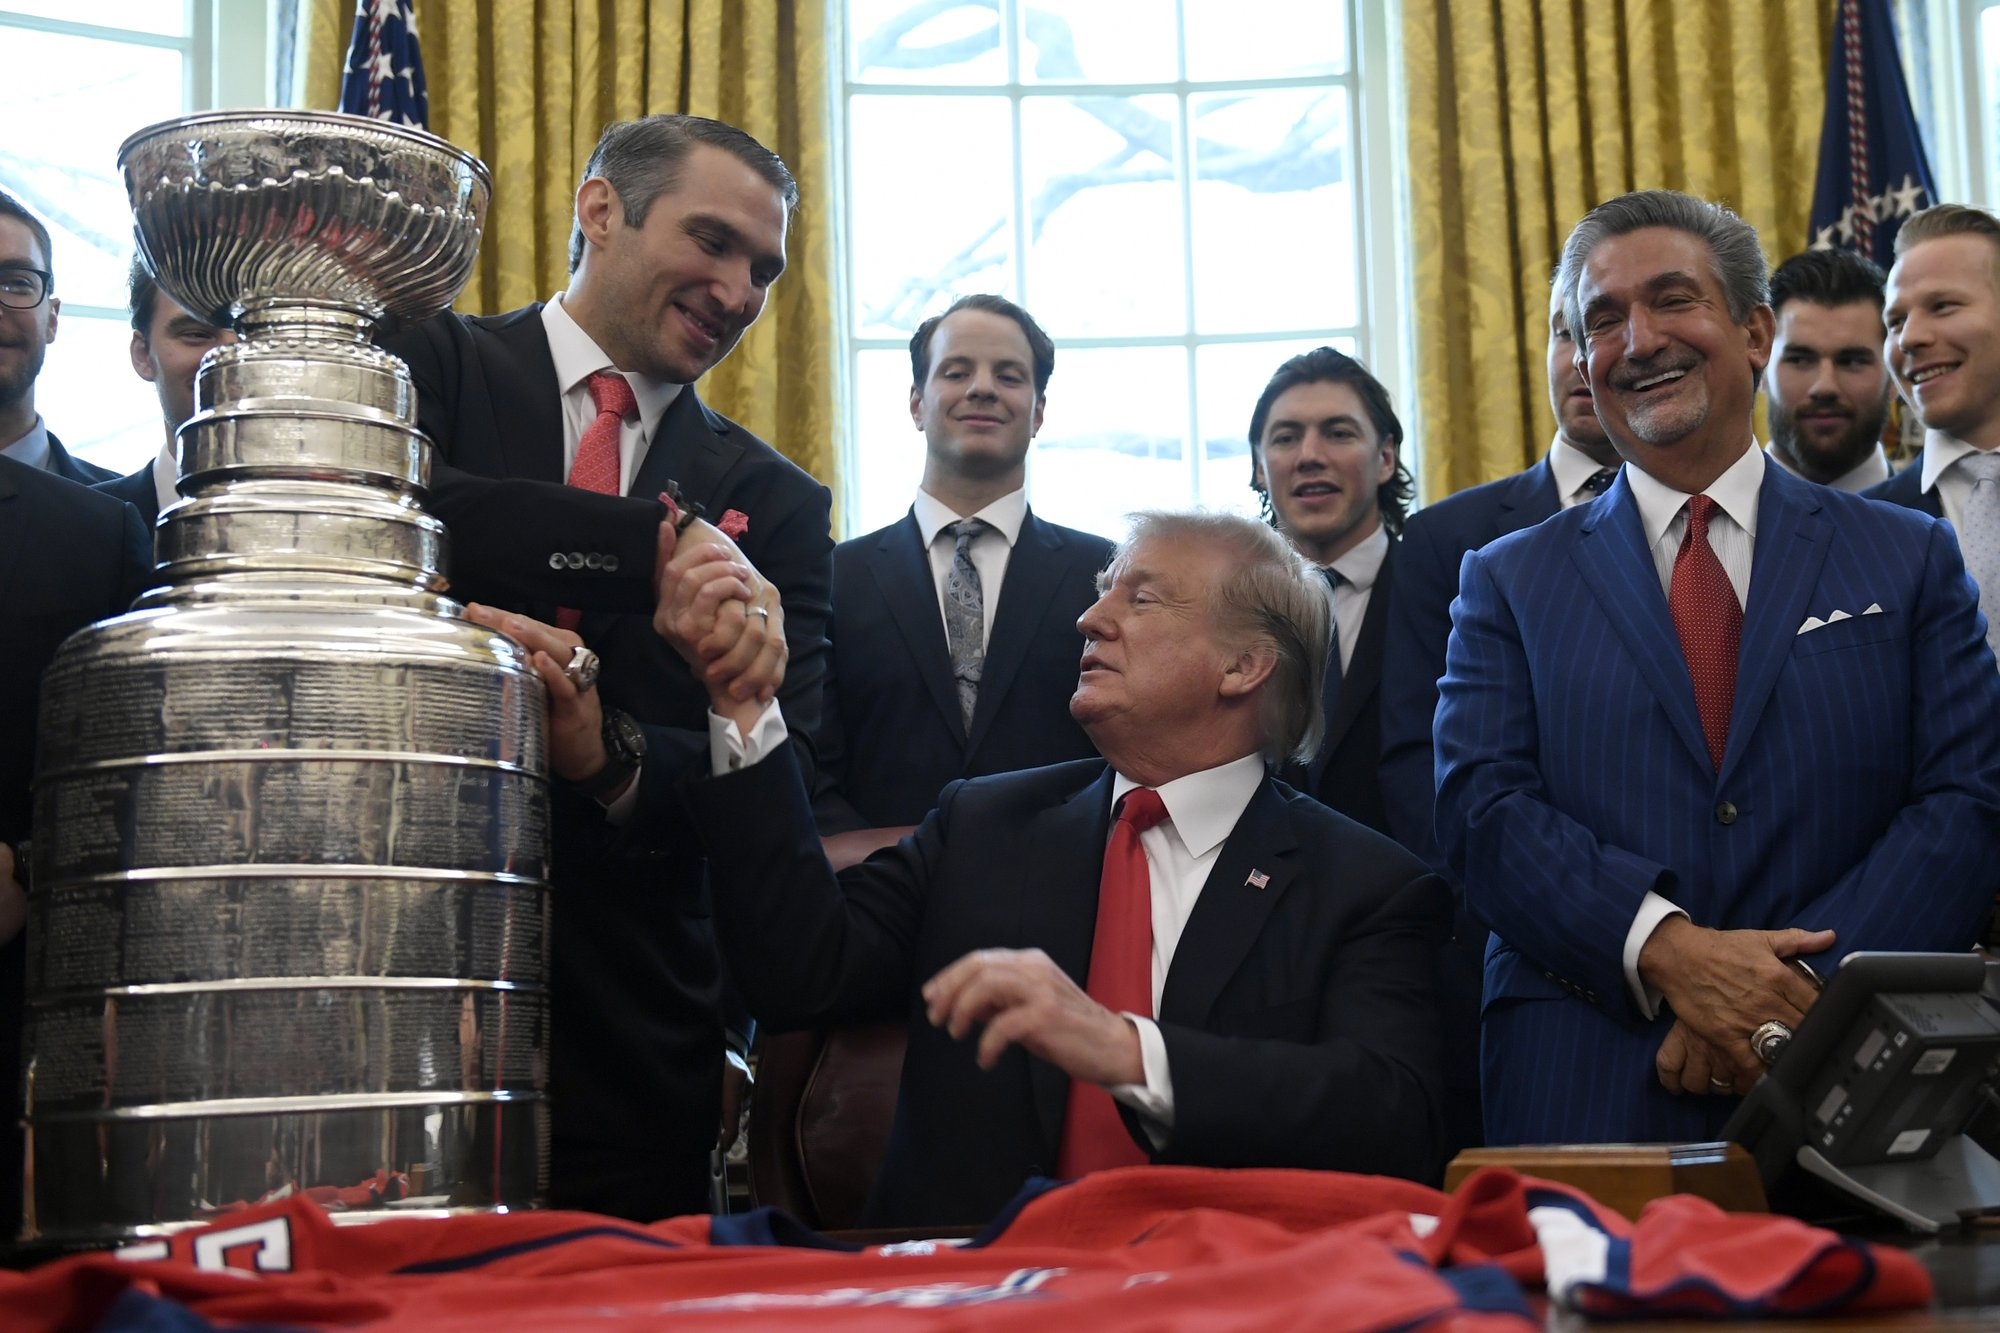 Trump hosts Stanley Cup champion Capitals at White House